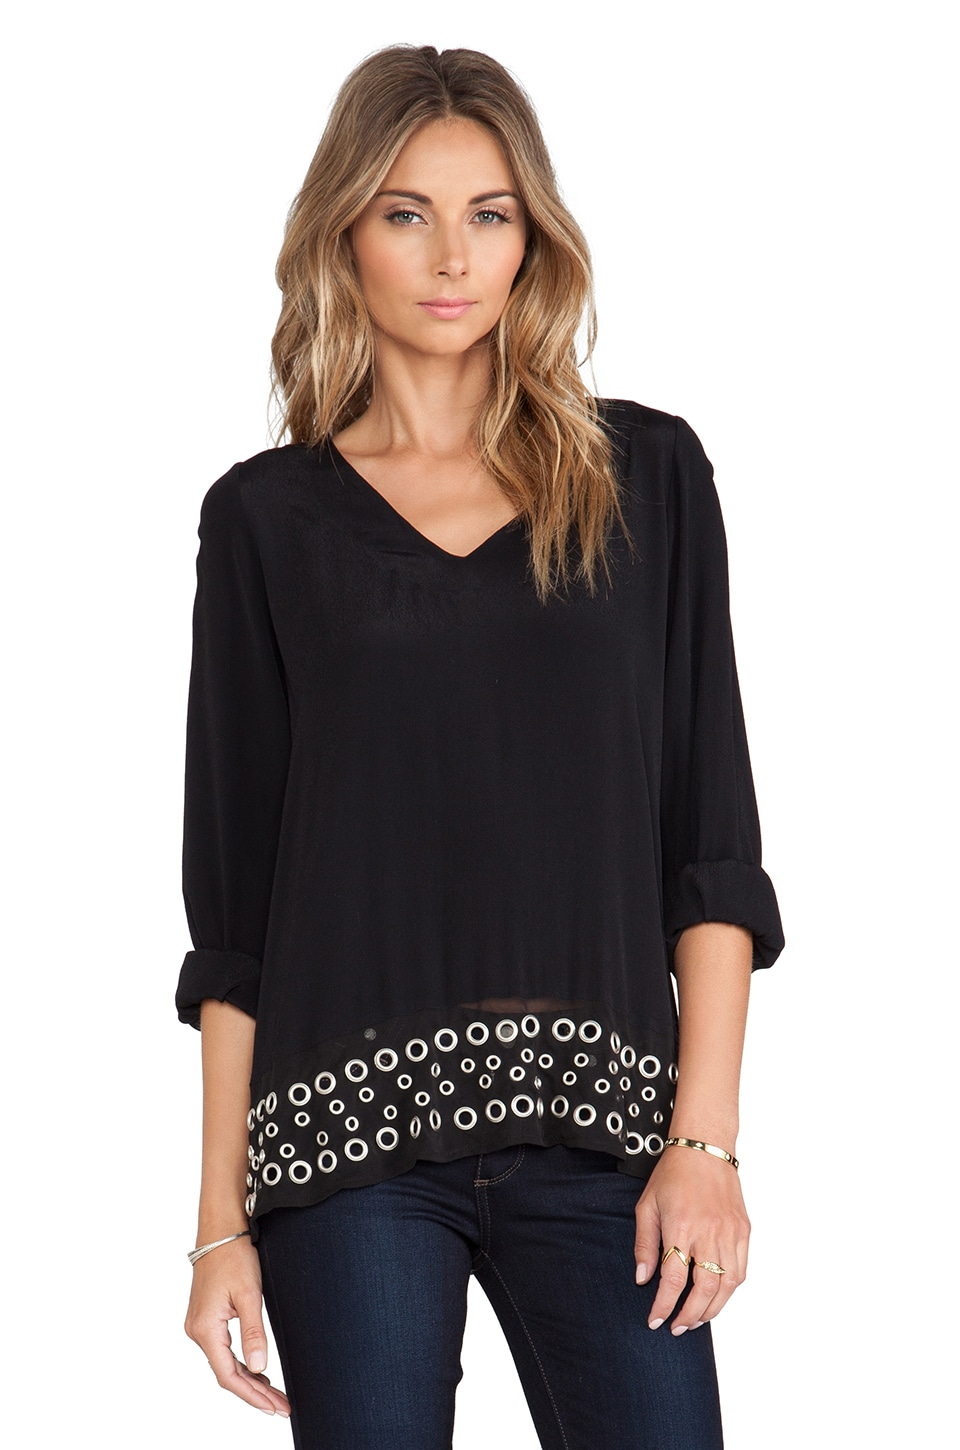 Lovers + Friends Sweet Kiss Blouse in Black